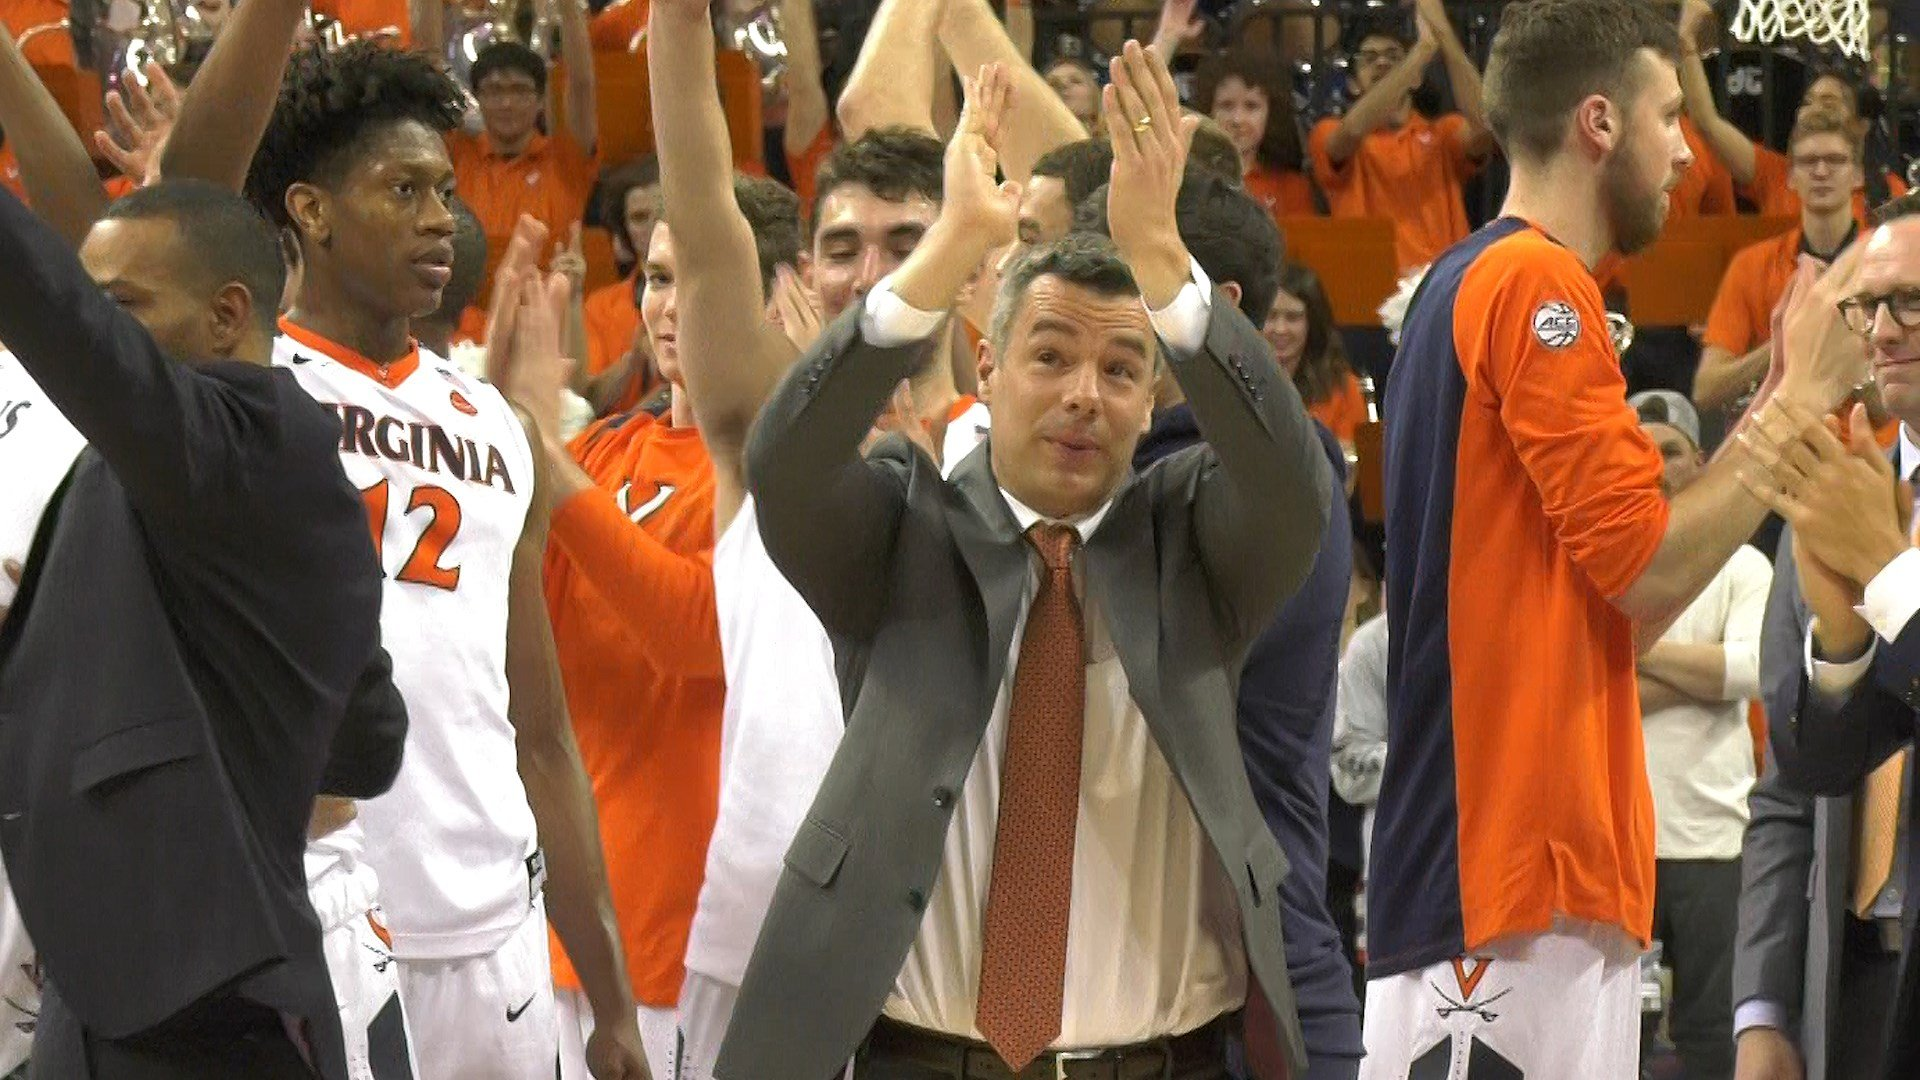 Tony Bennett was named the ACC Coach of the Year